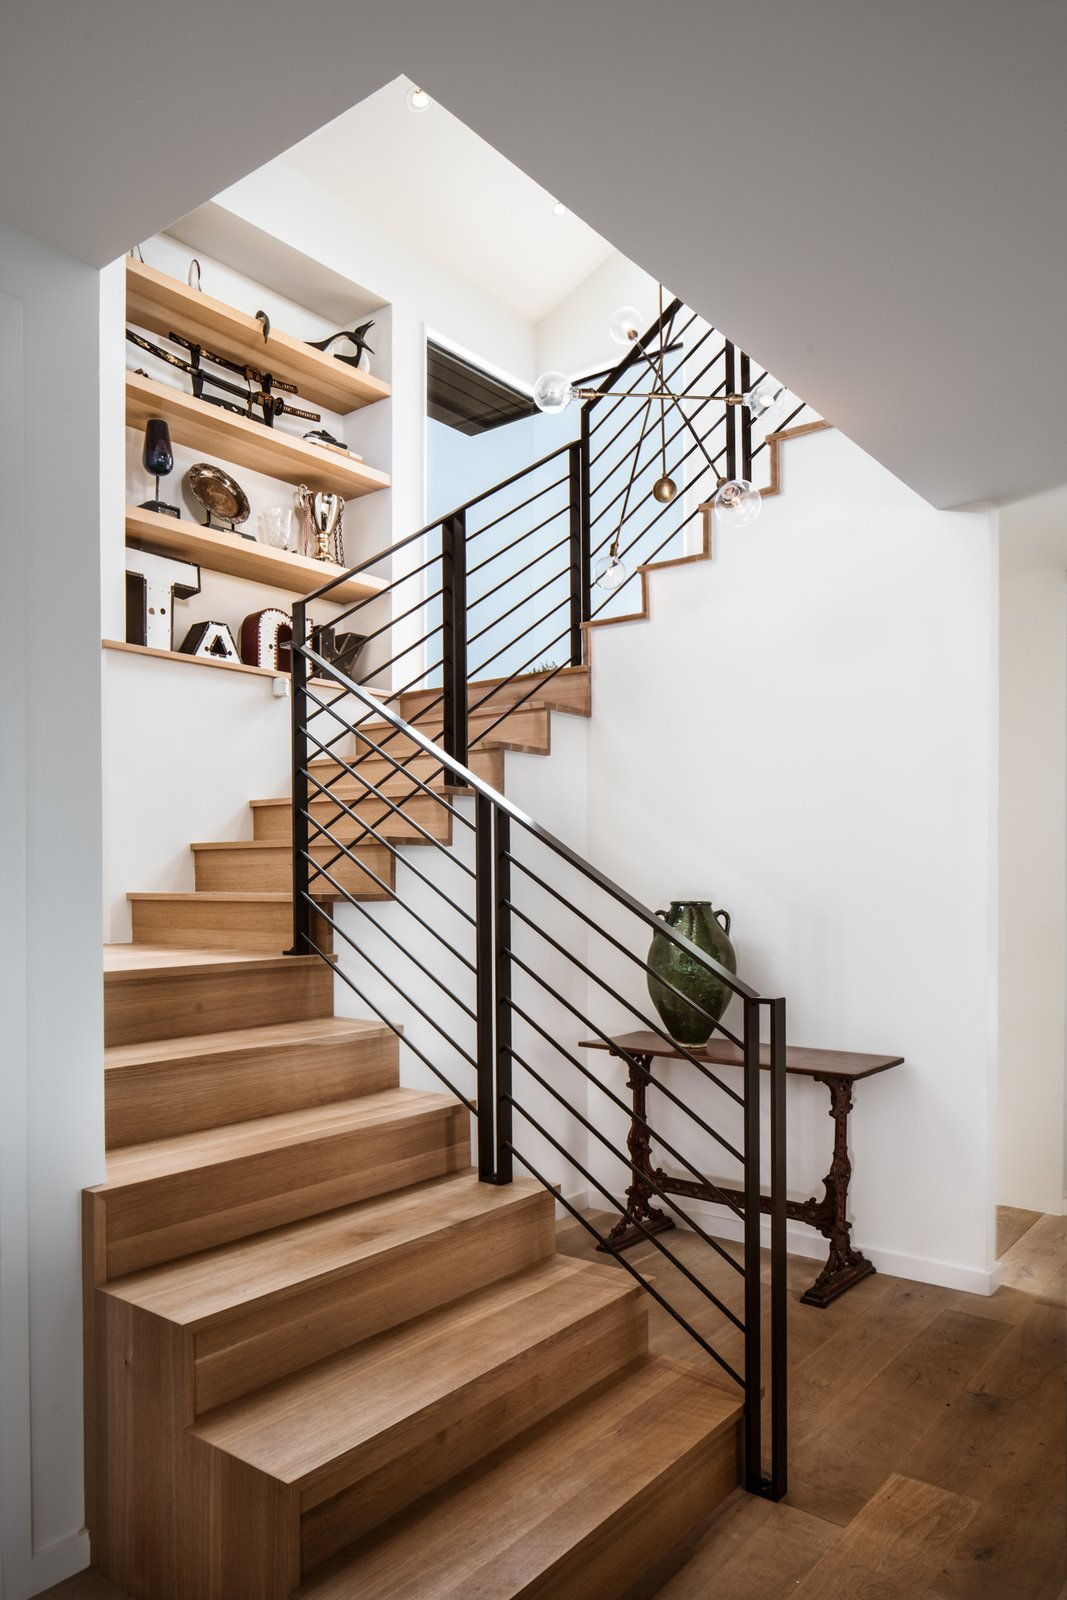 Staircase, Metal Railing, and Wood Tread Stairs  River Garden Trail Residence by Texas Construction Company